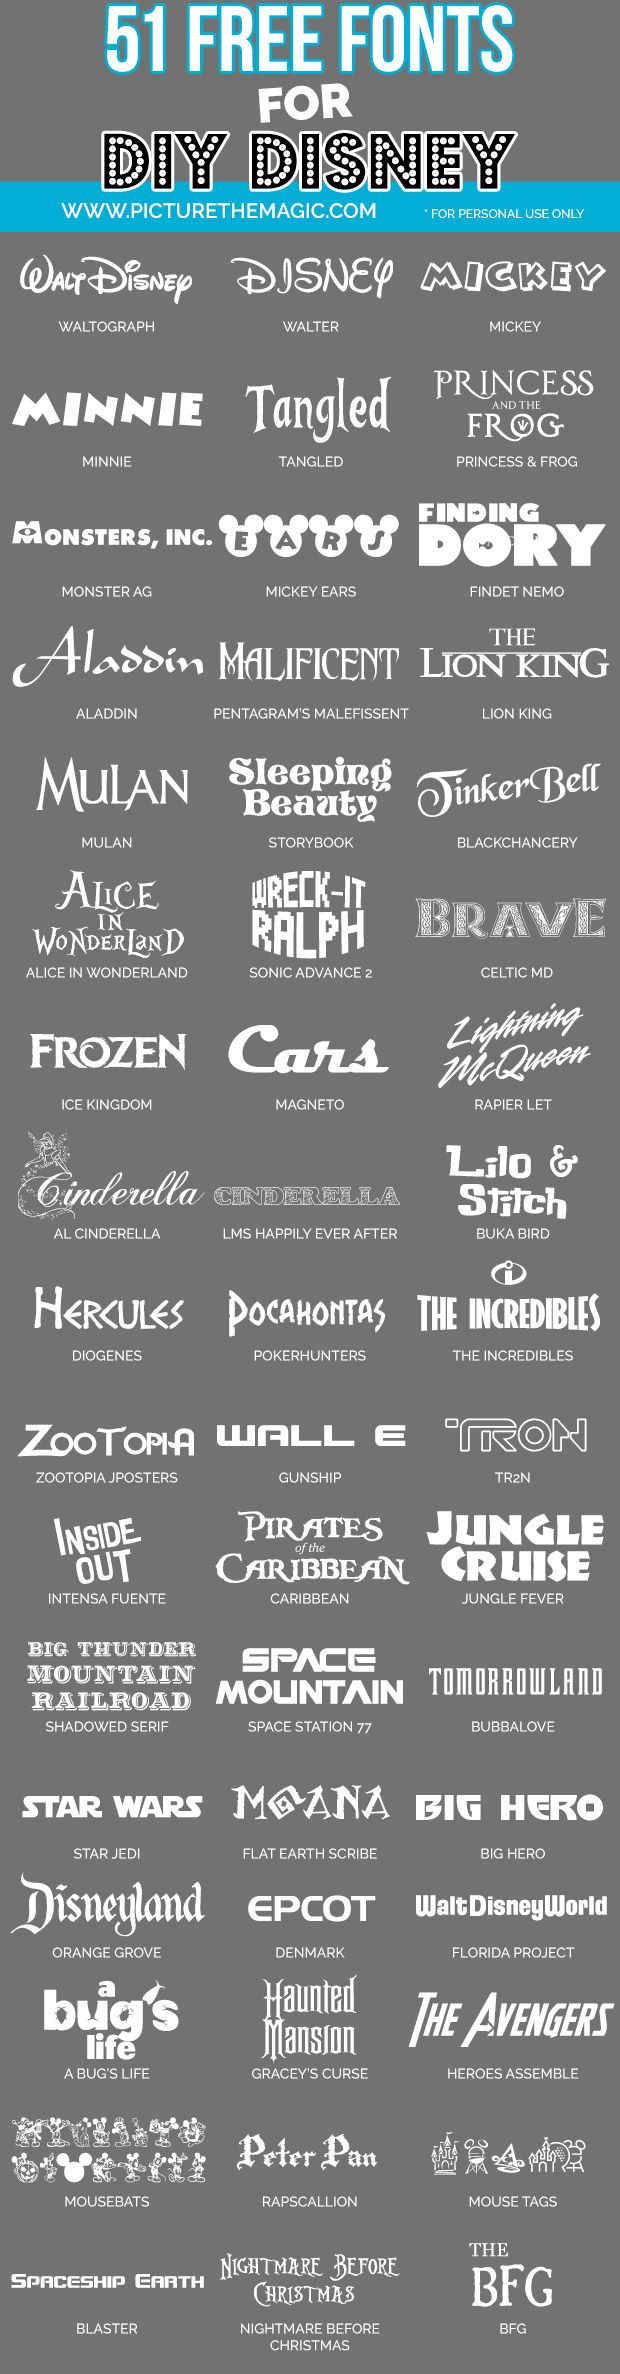 Wow! 58 free Disney fonts from Disney movies, Disney parks, etc. << not sure if this actually works but seems cool xxx